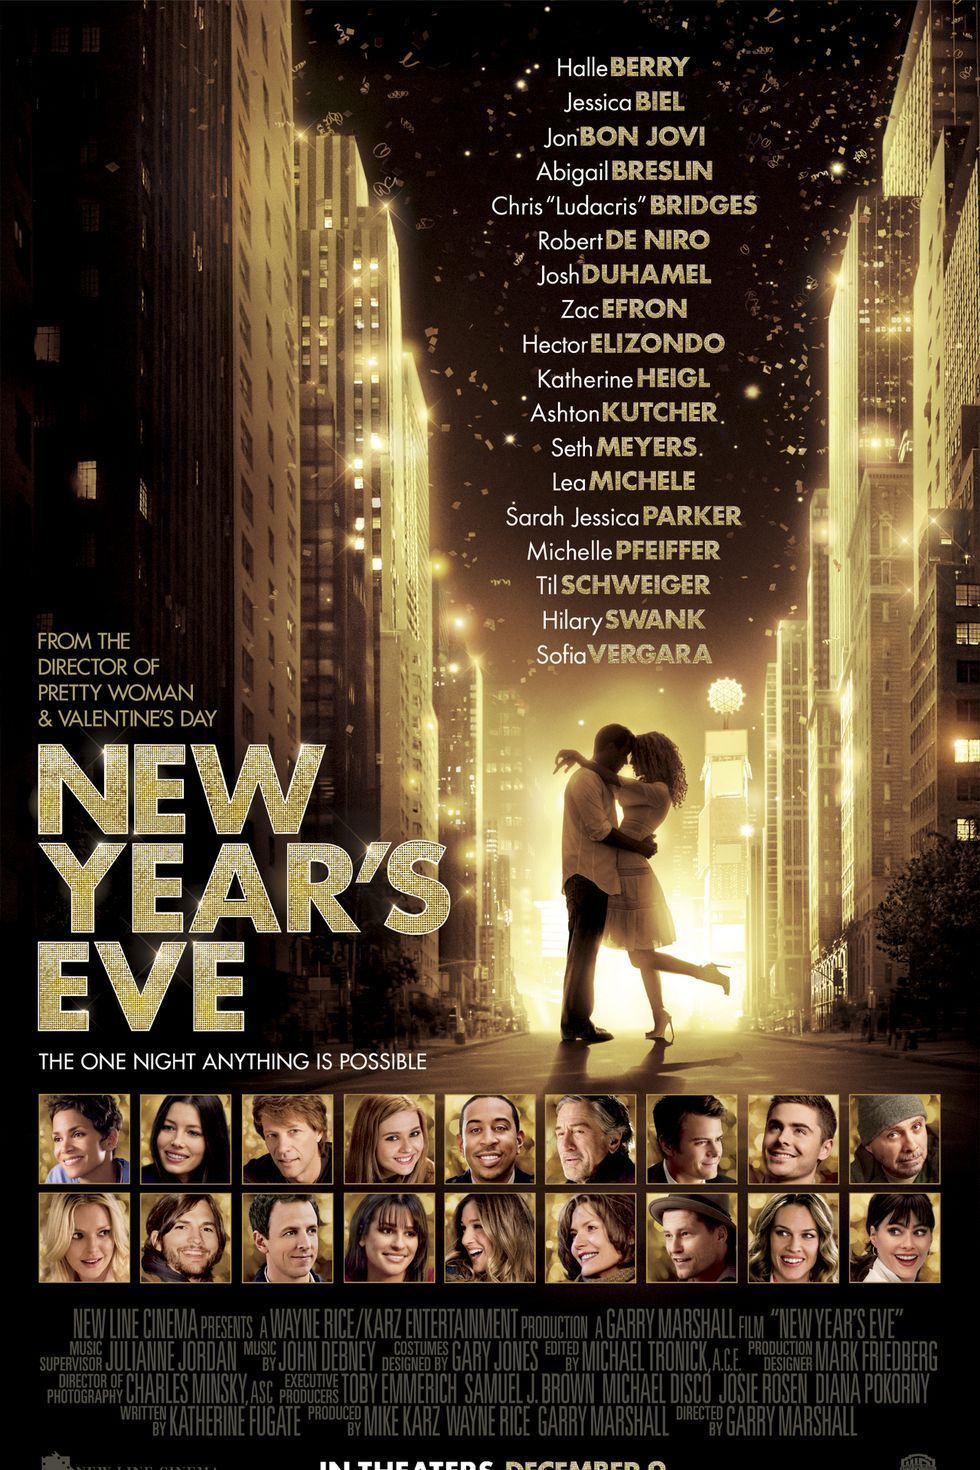 Forget Going Out Here Are Movies You Should Watch On New Year S Eve New Year Eve Movie New Year S Eve Film New Year S Eve 2011